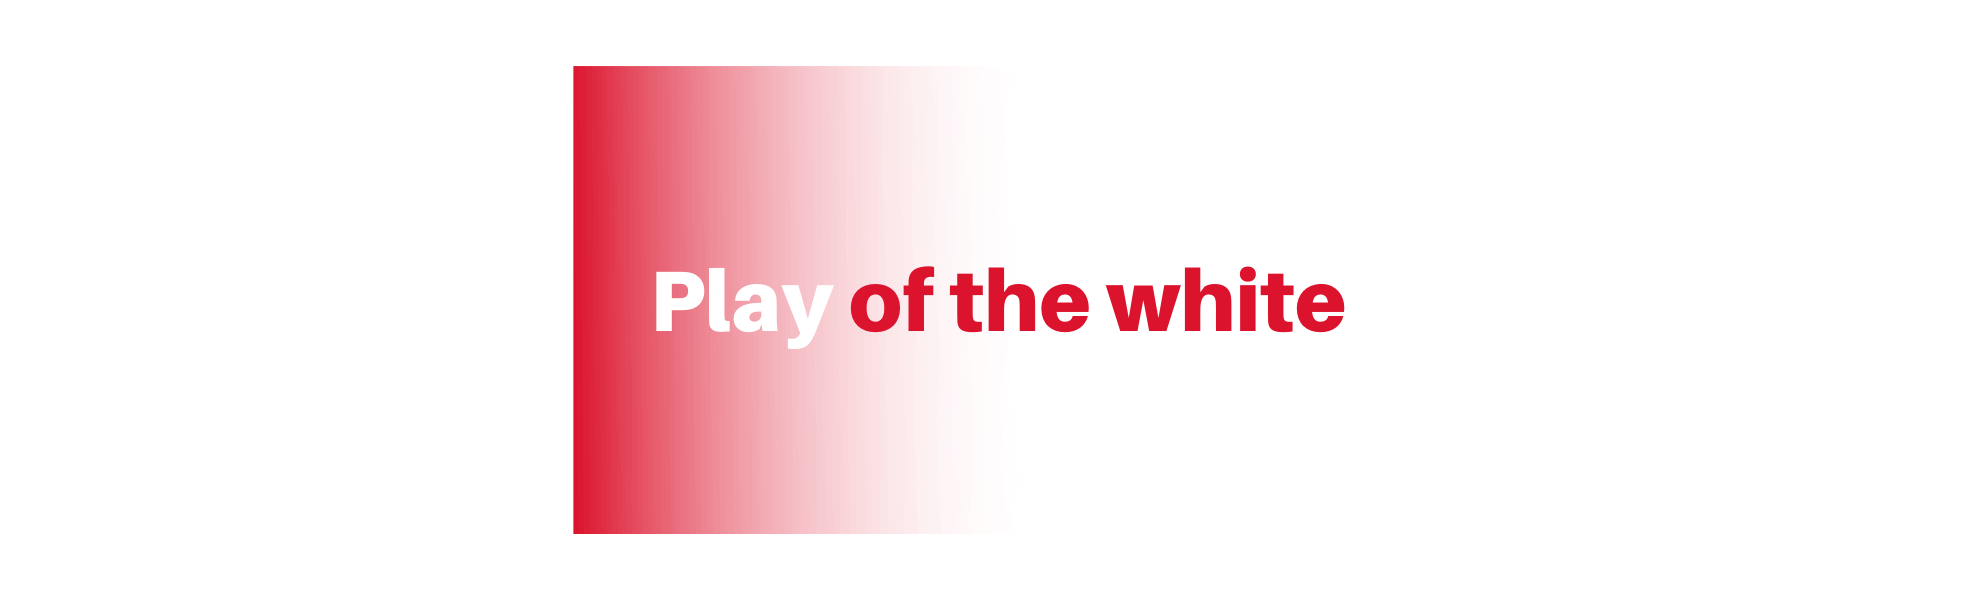 PLAY WITH THE WHITE